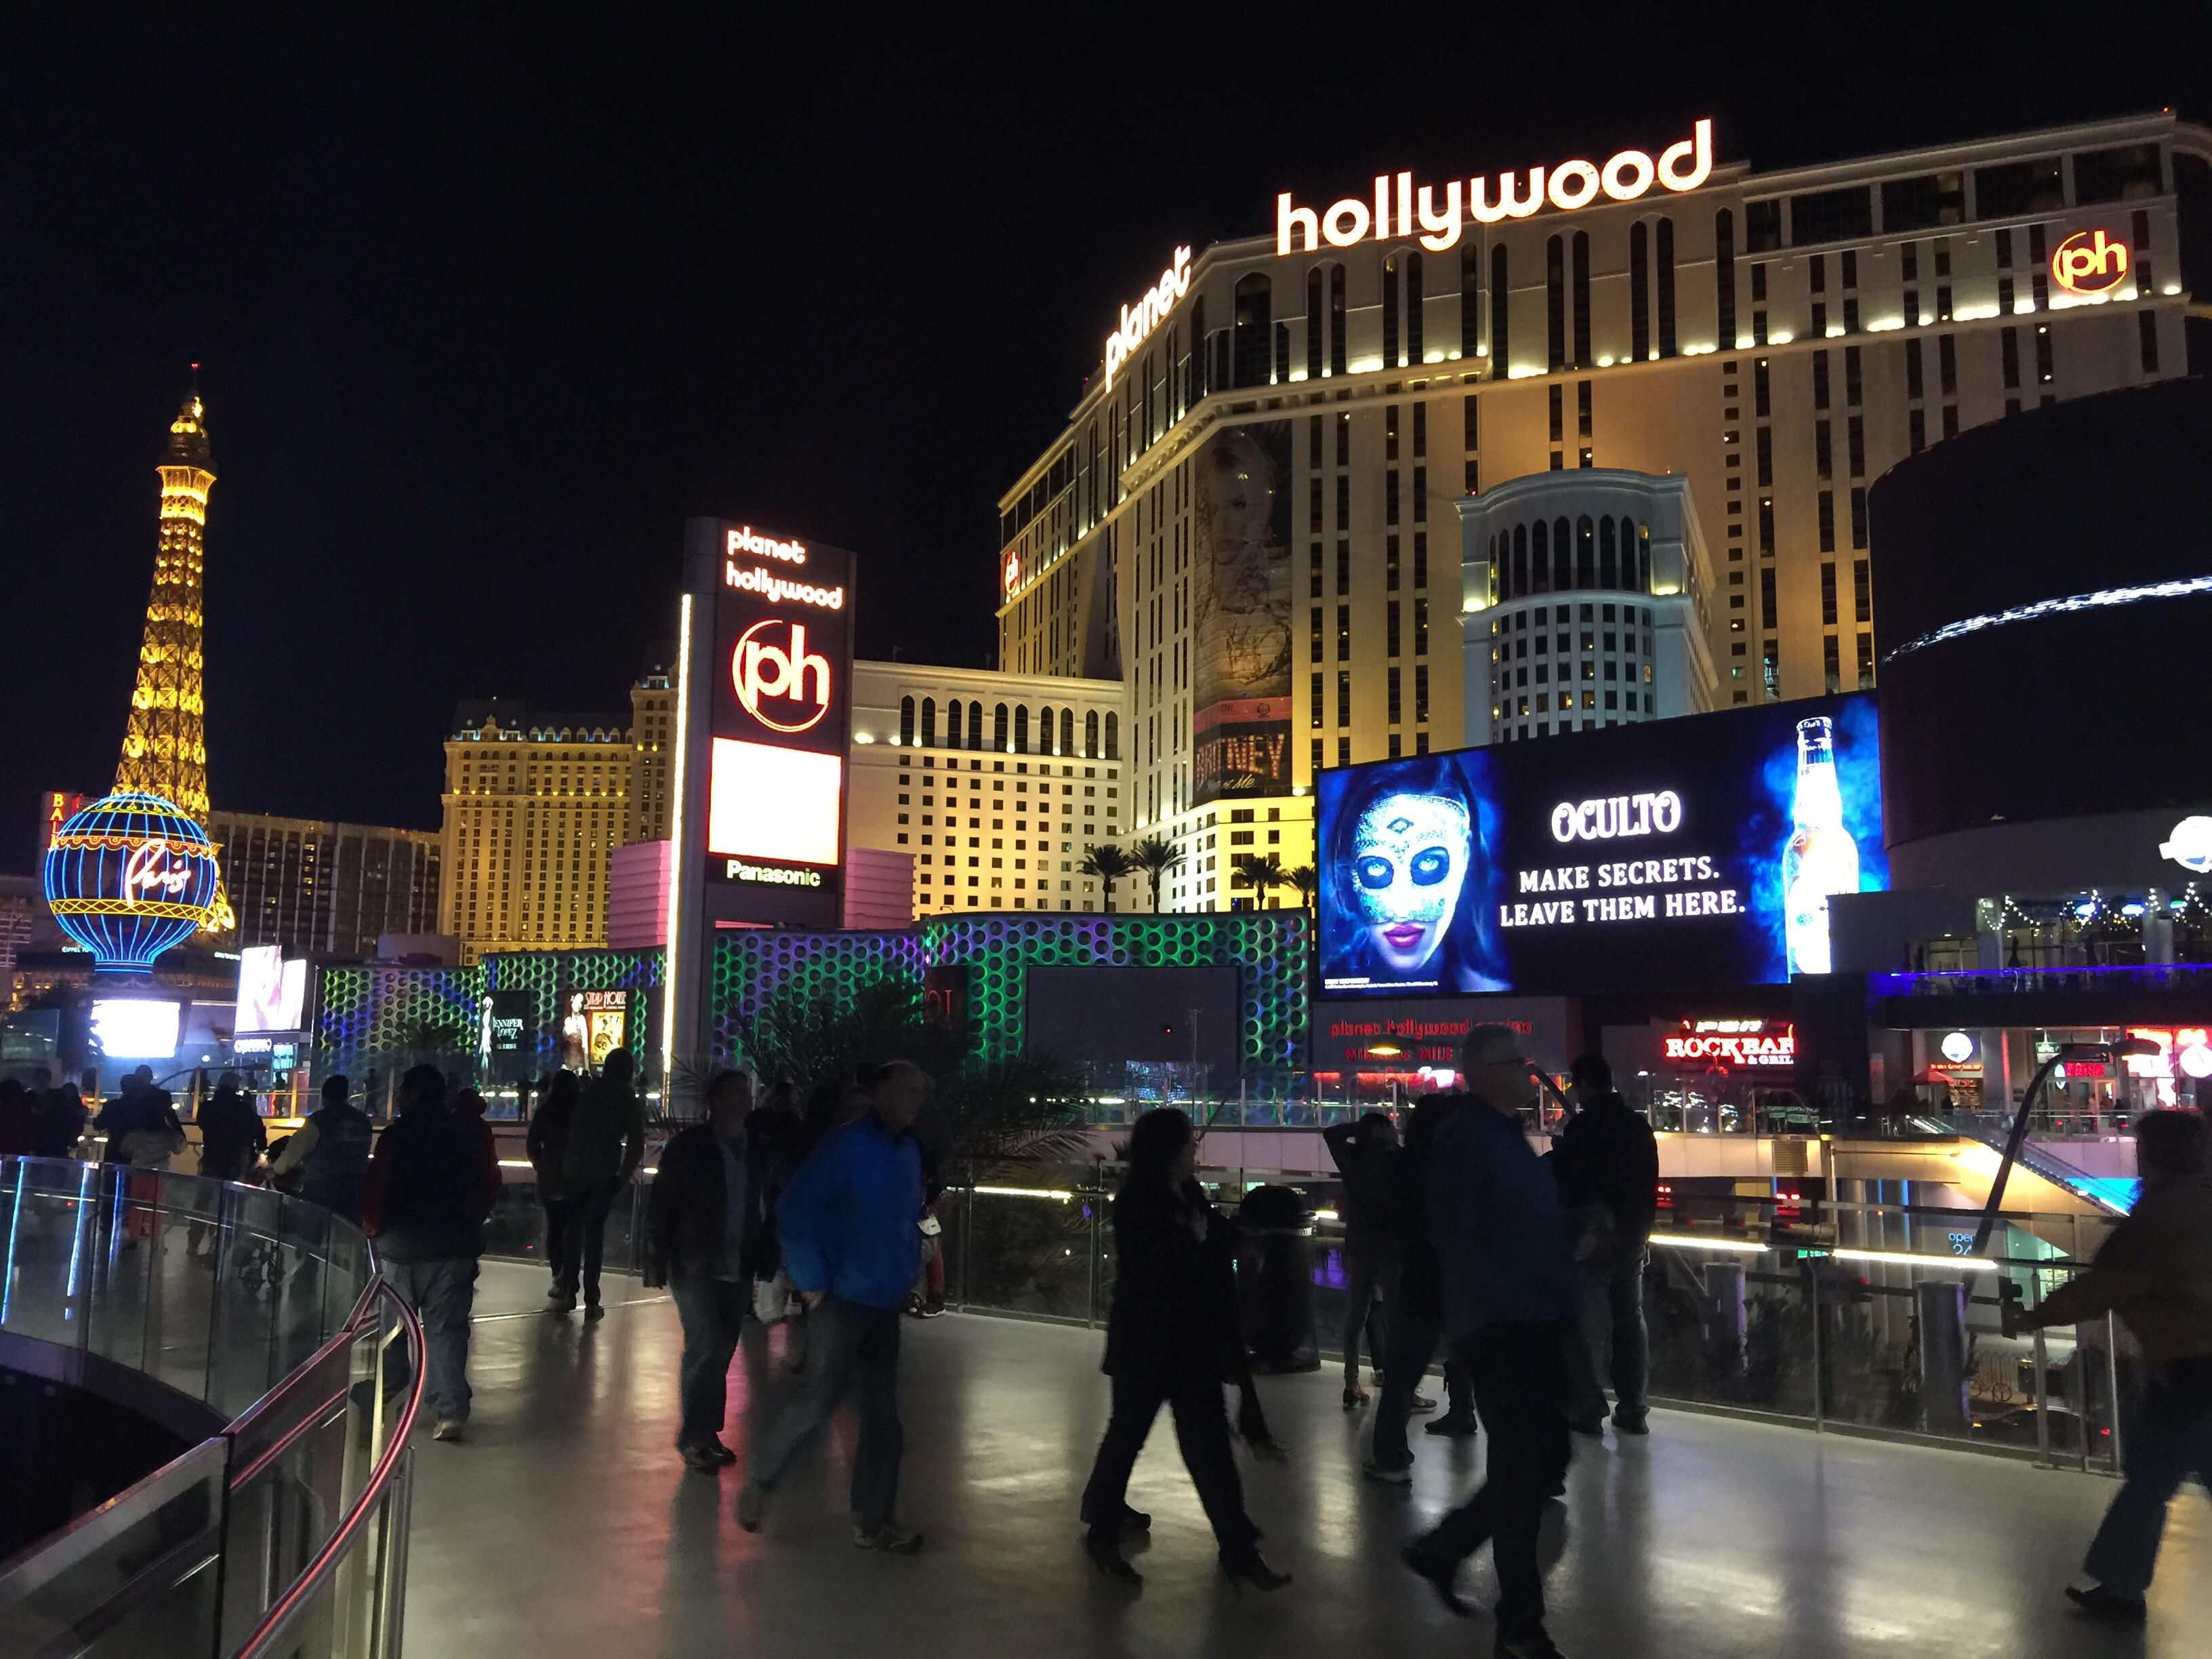 Las Vegas is doing well 2015 Planet Hollywood Paris. High traffic at Mandalay Bay and MGM